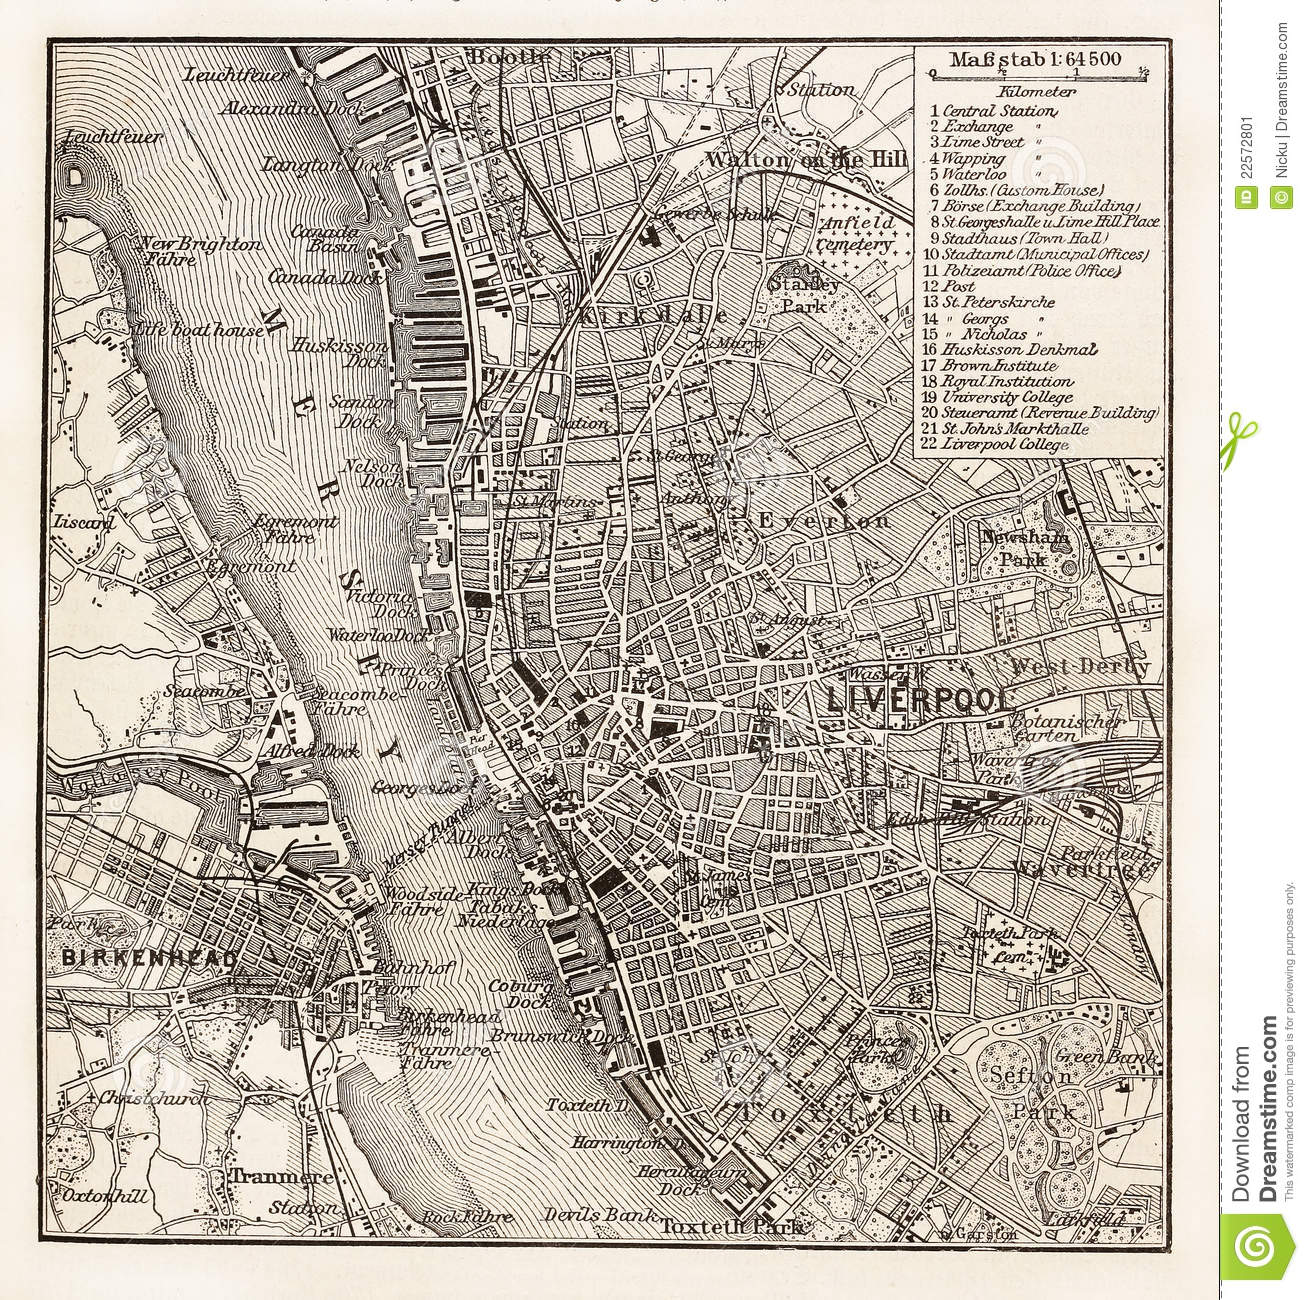 Old paris street map royalty free stock photo image 15885665 - Vintage Map Of Liverpool Stock Image